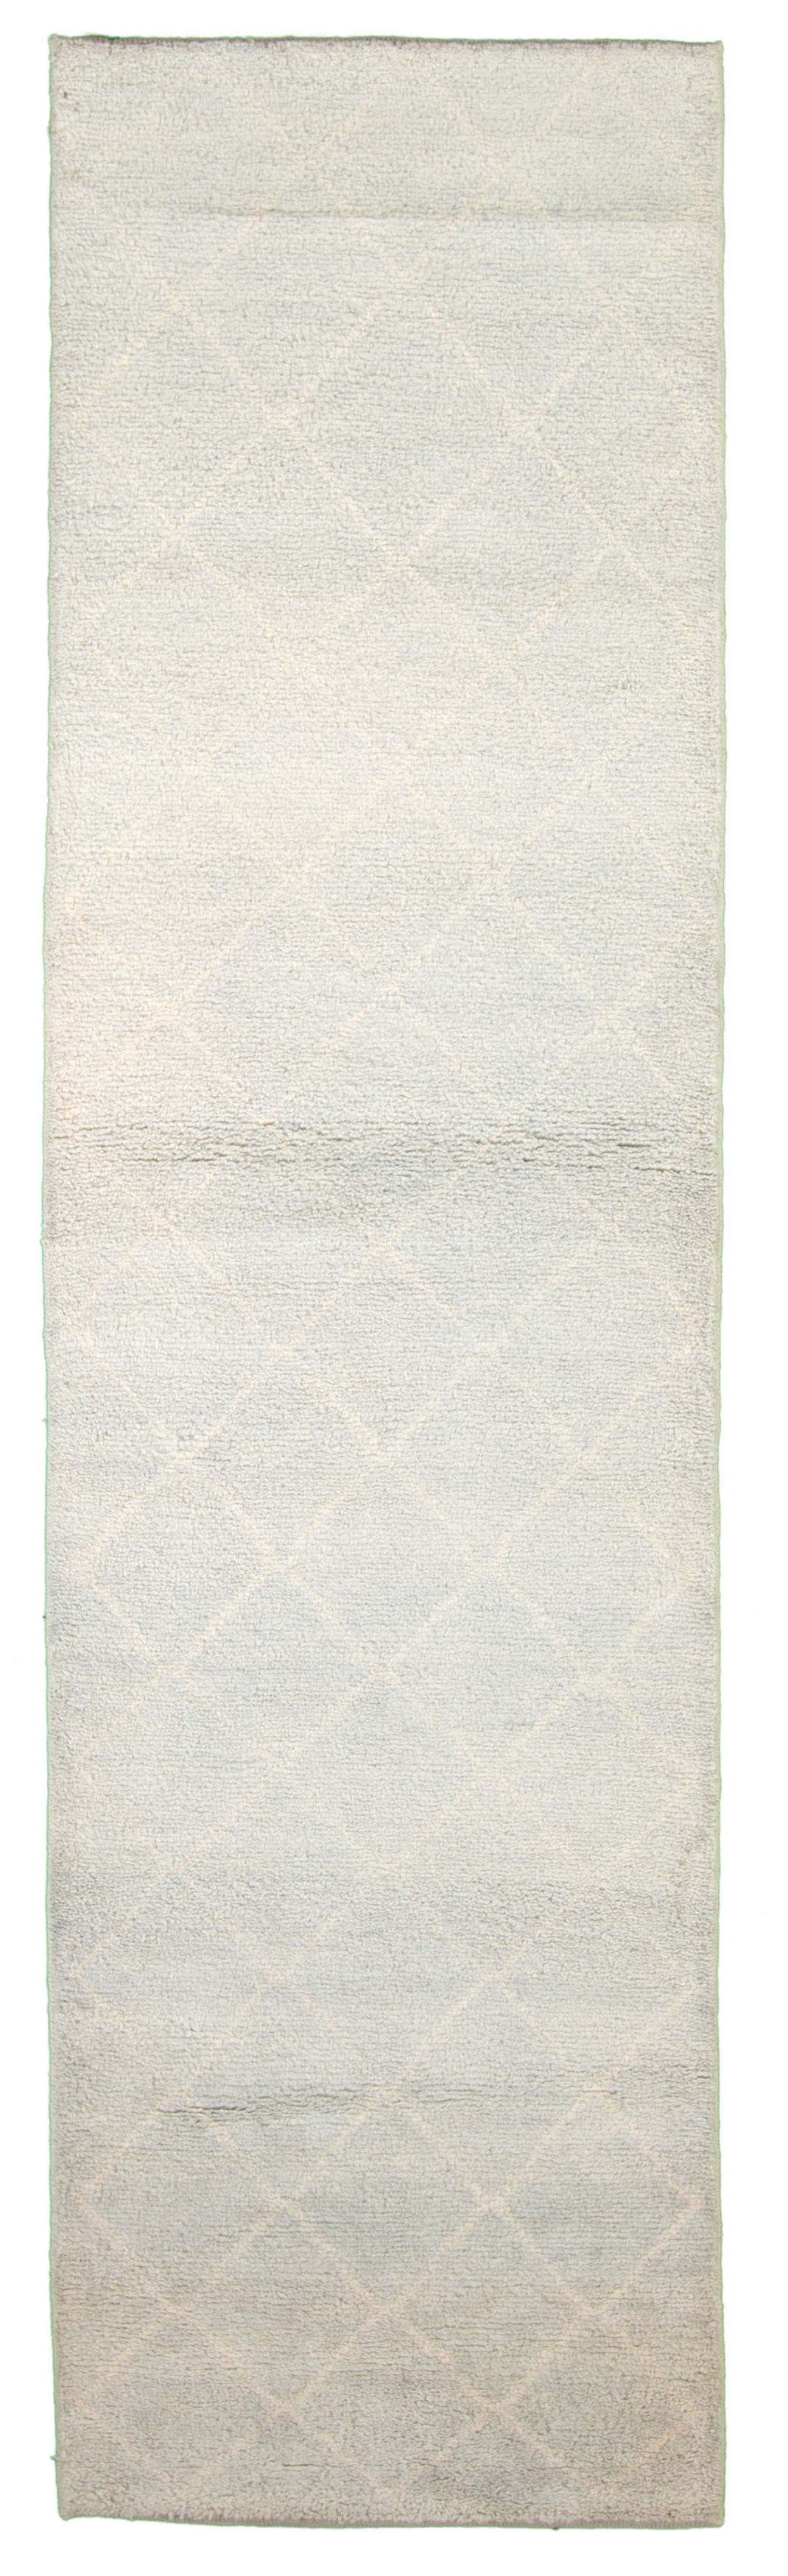 """Hand hooked Tangier  Rug 2'7"""" x 9'8"""" Size: 2'7"""" x 9'8"""""""